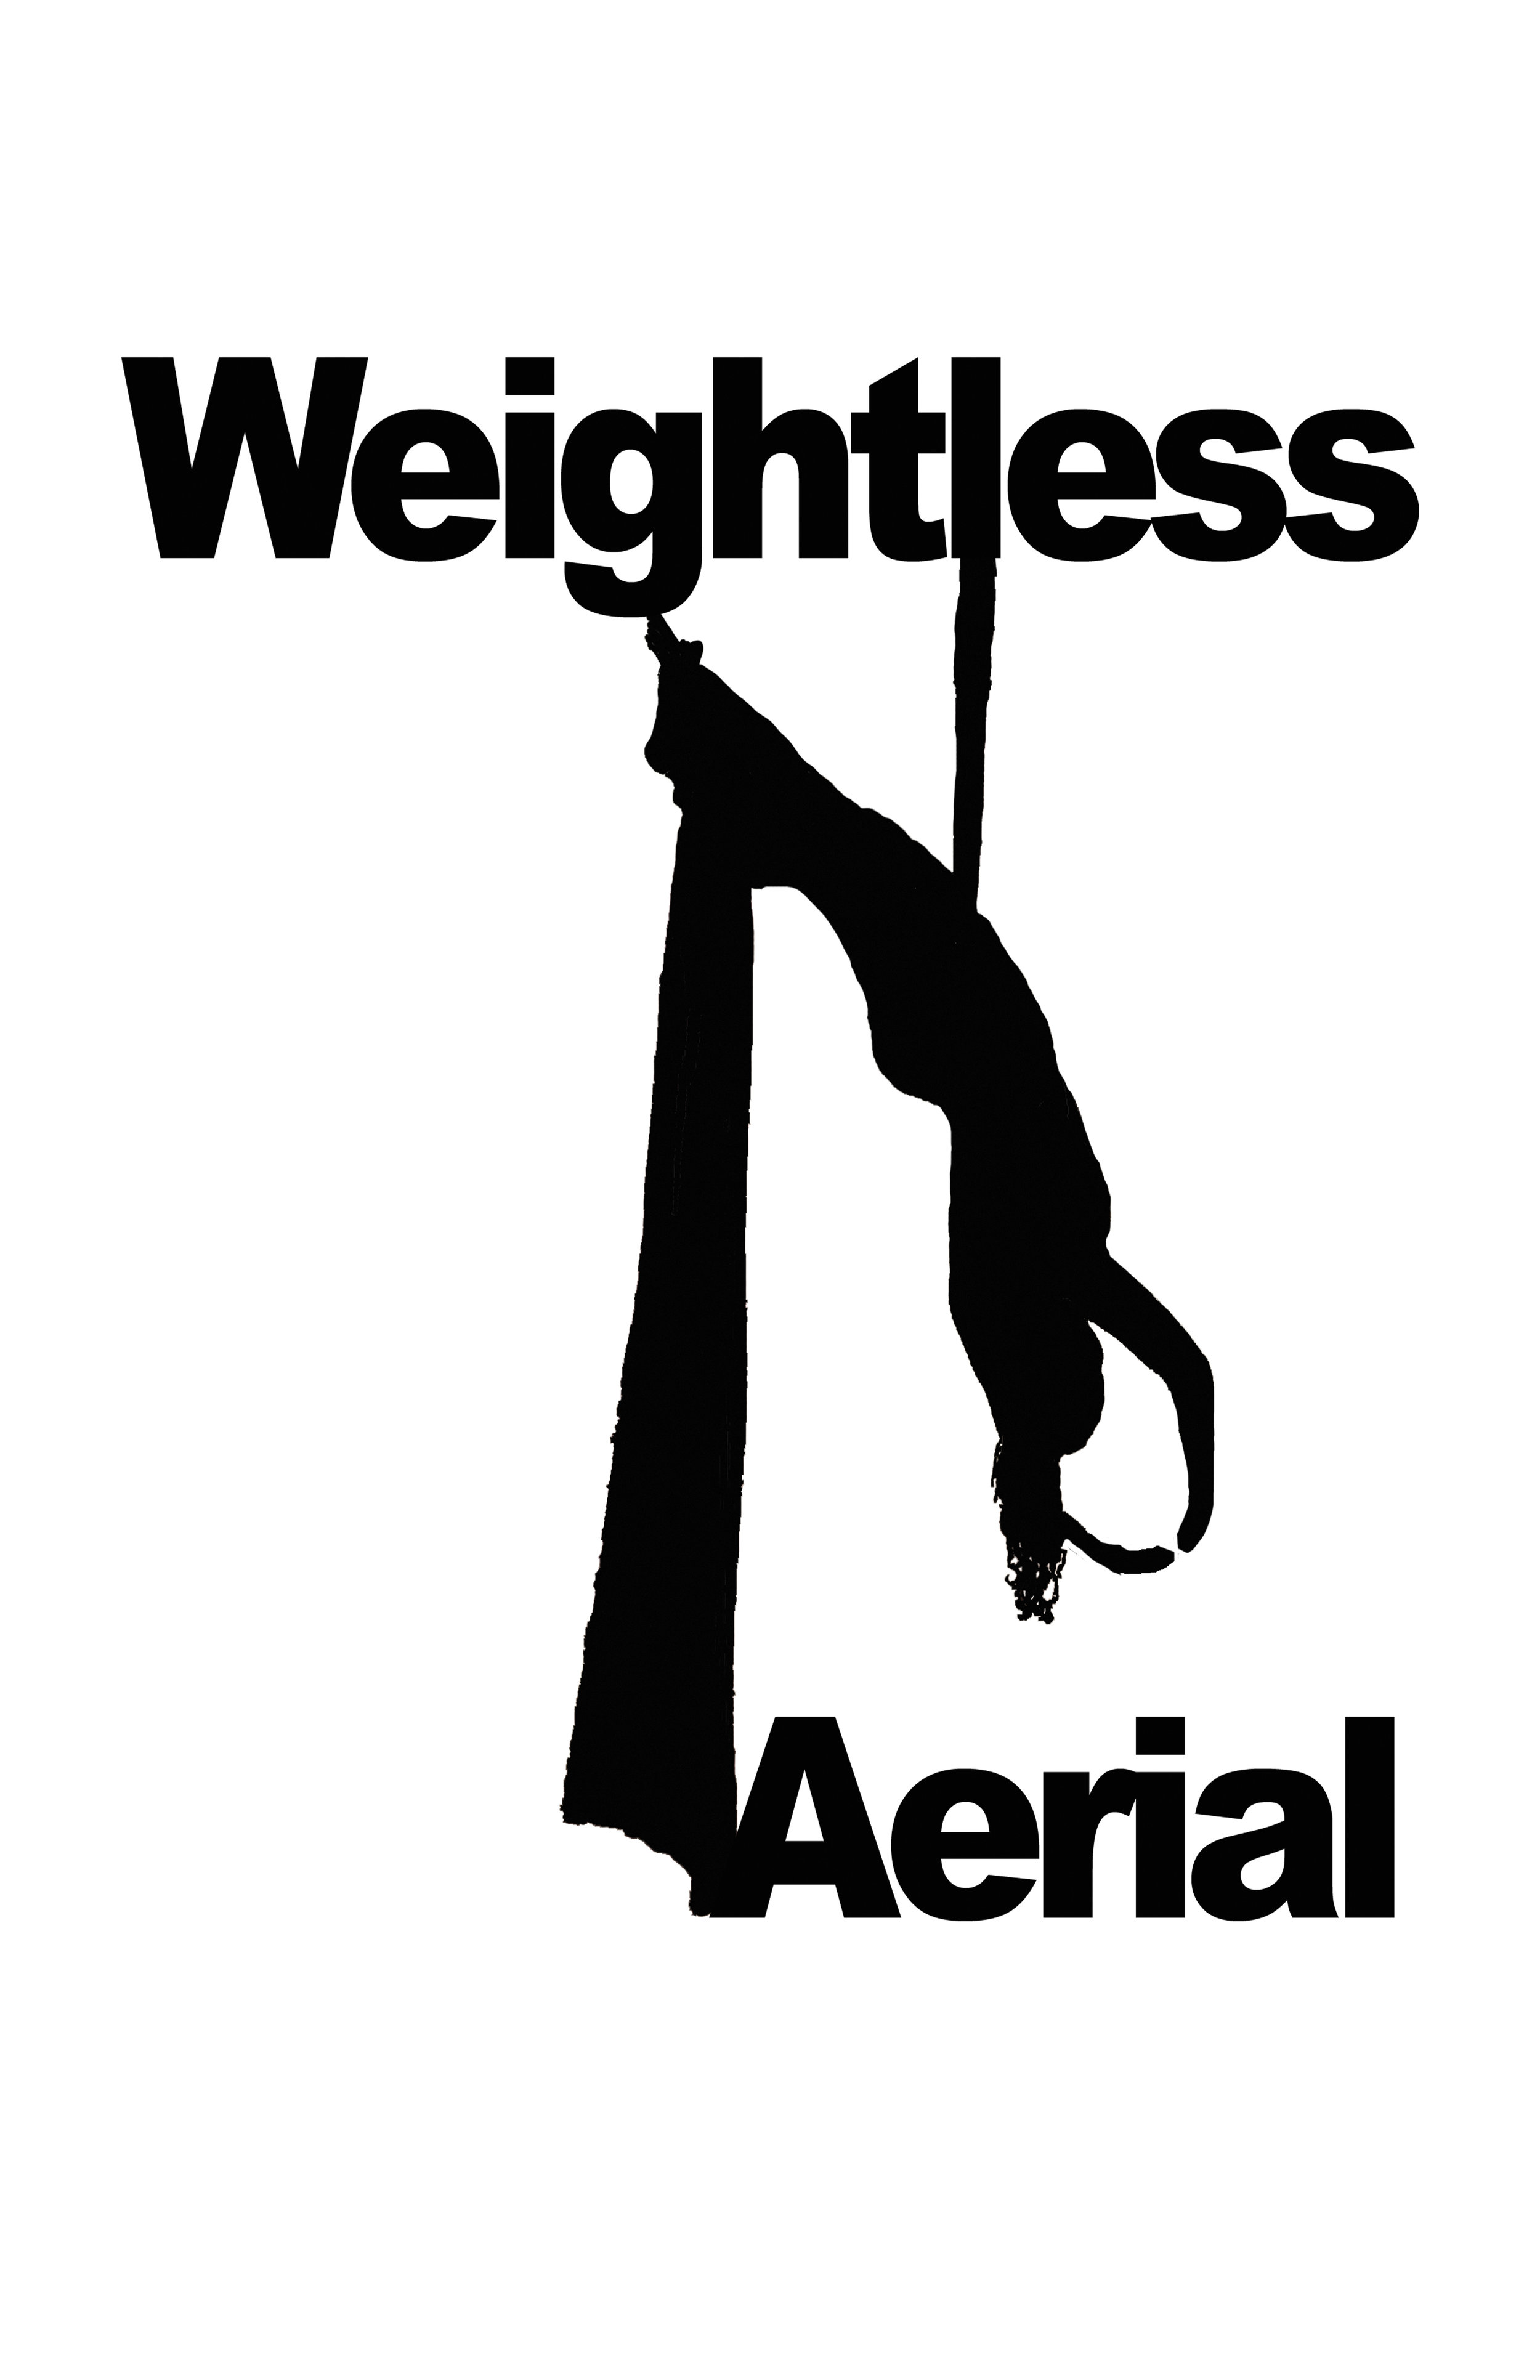 Weightless Aerial.jpg